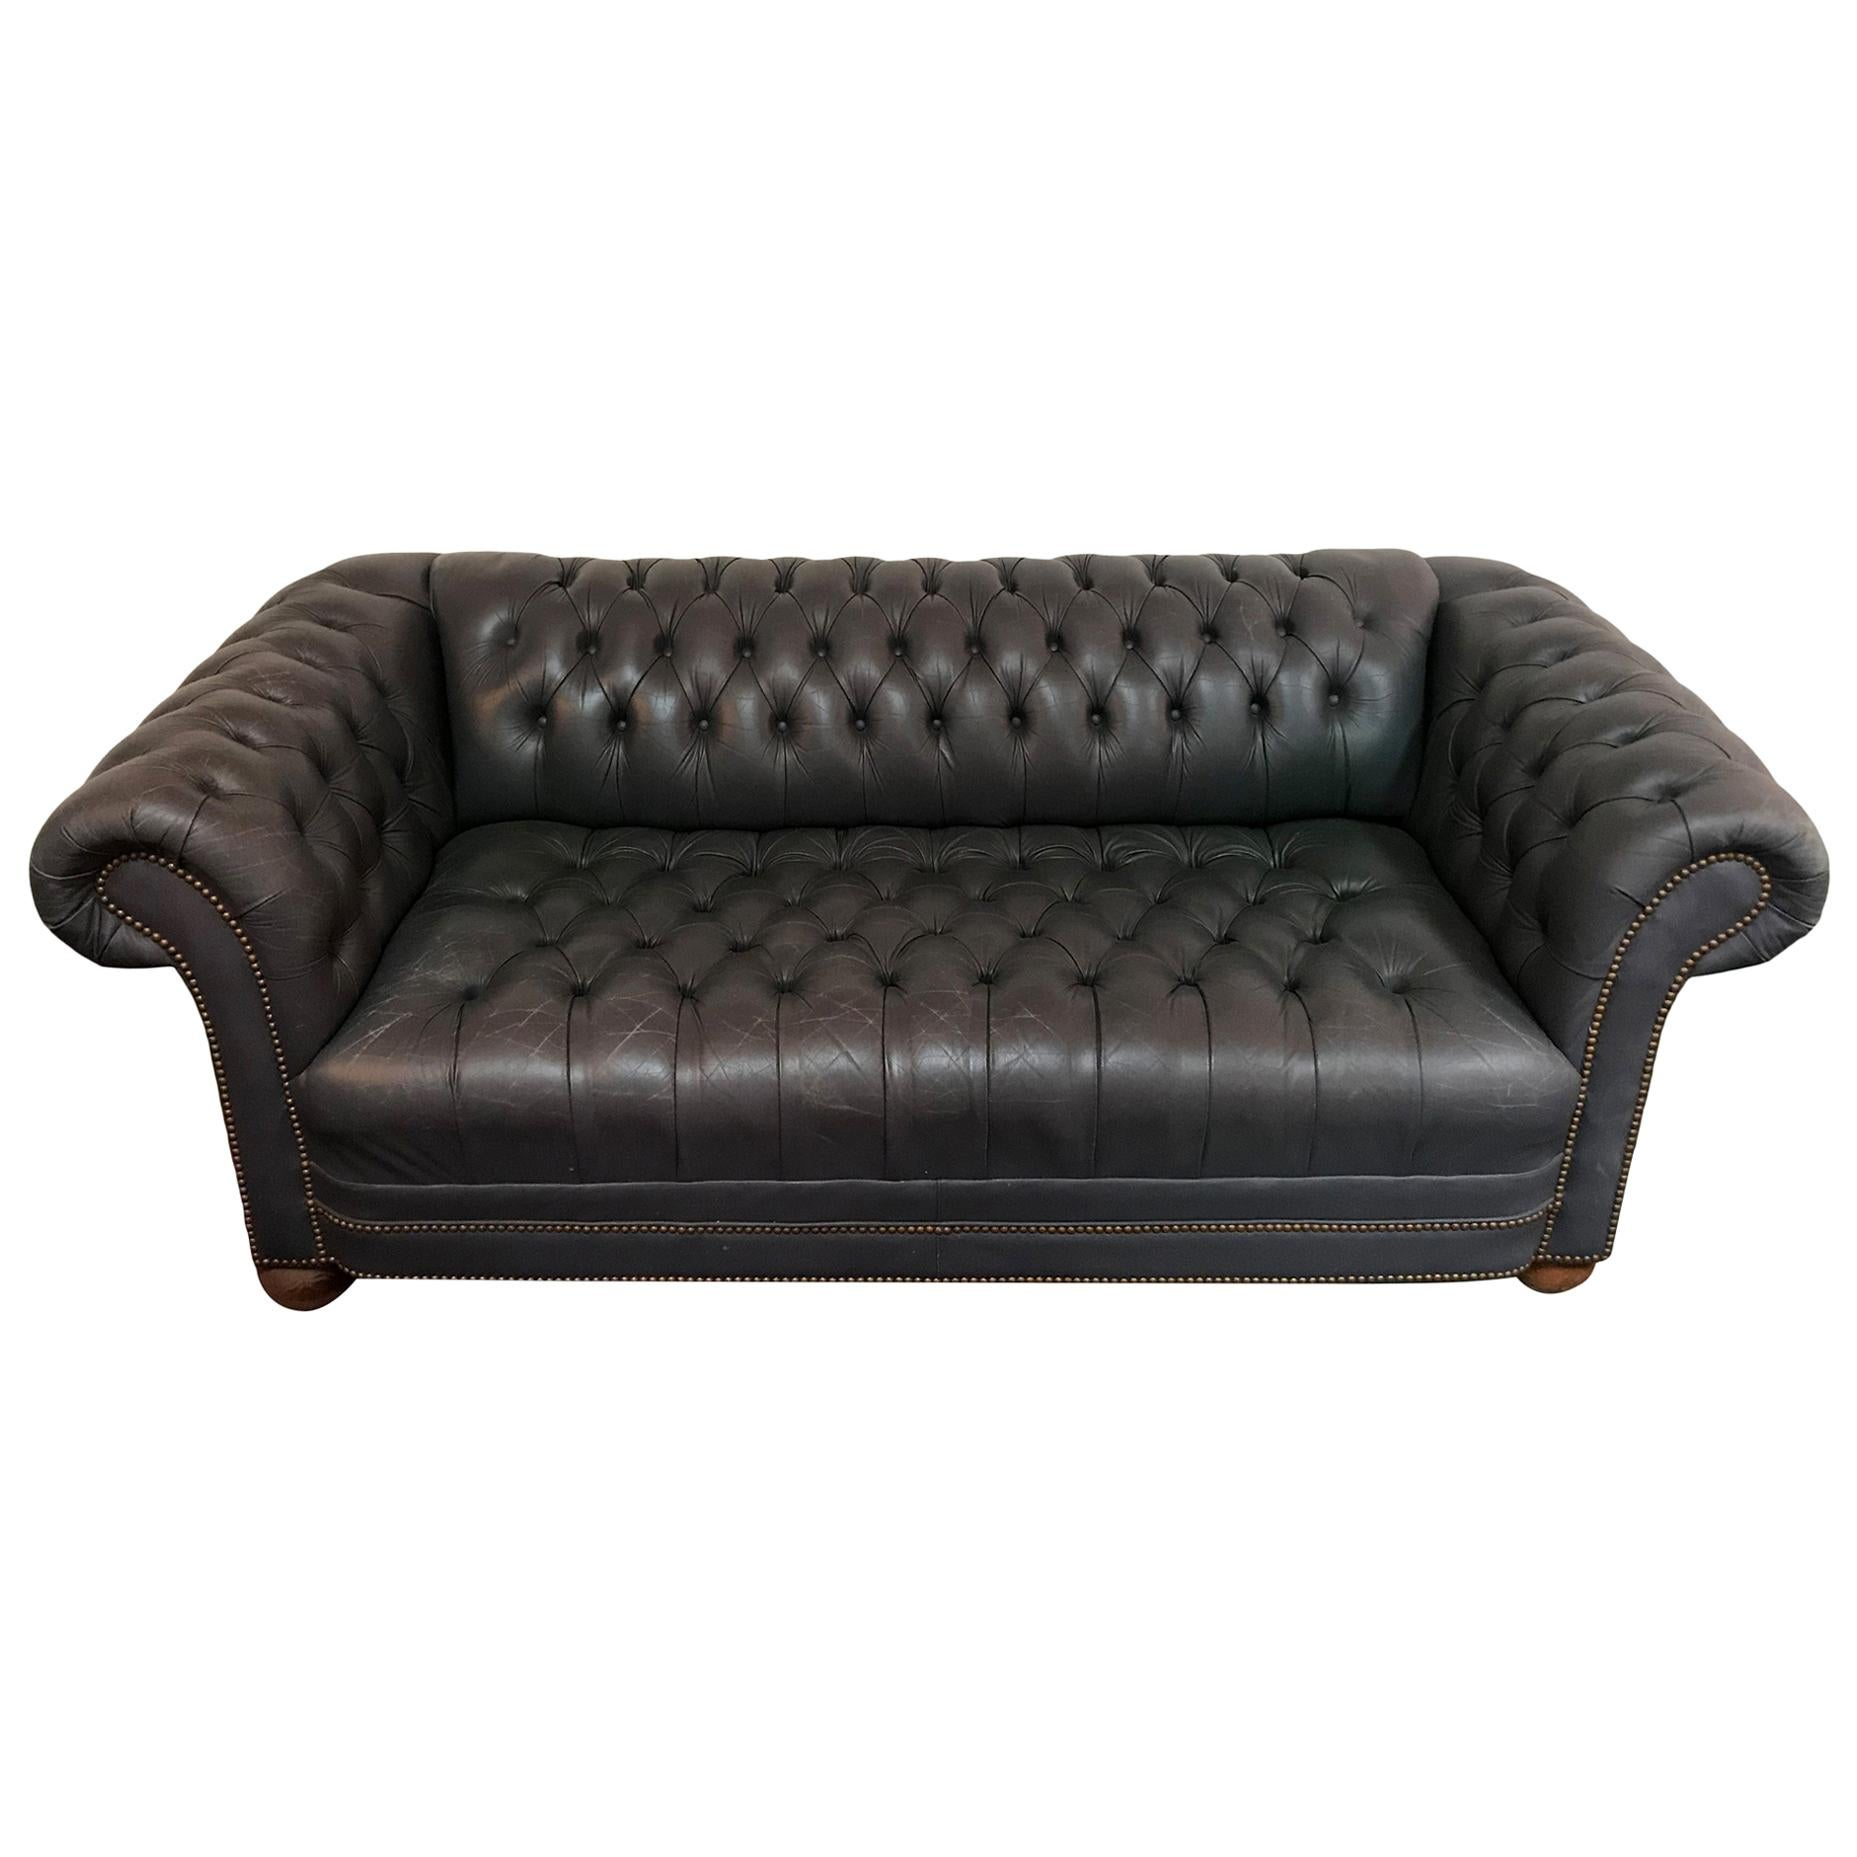 Vintage Blue Leather Tufted Sofa